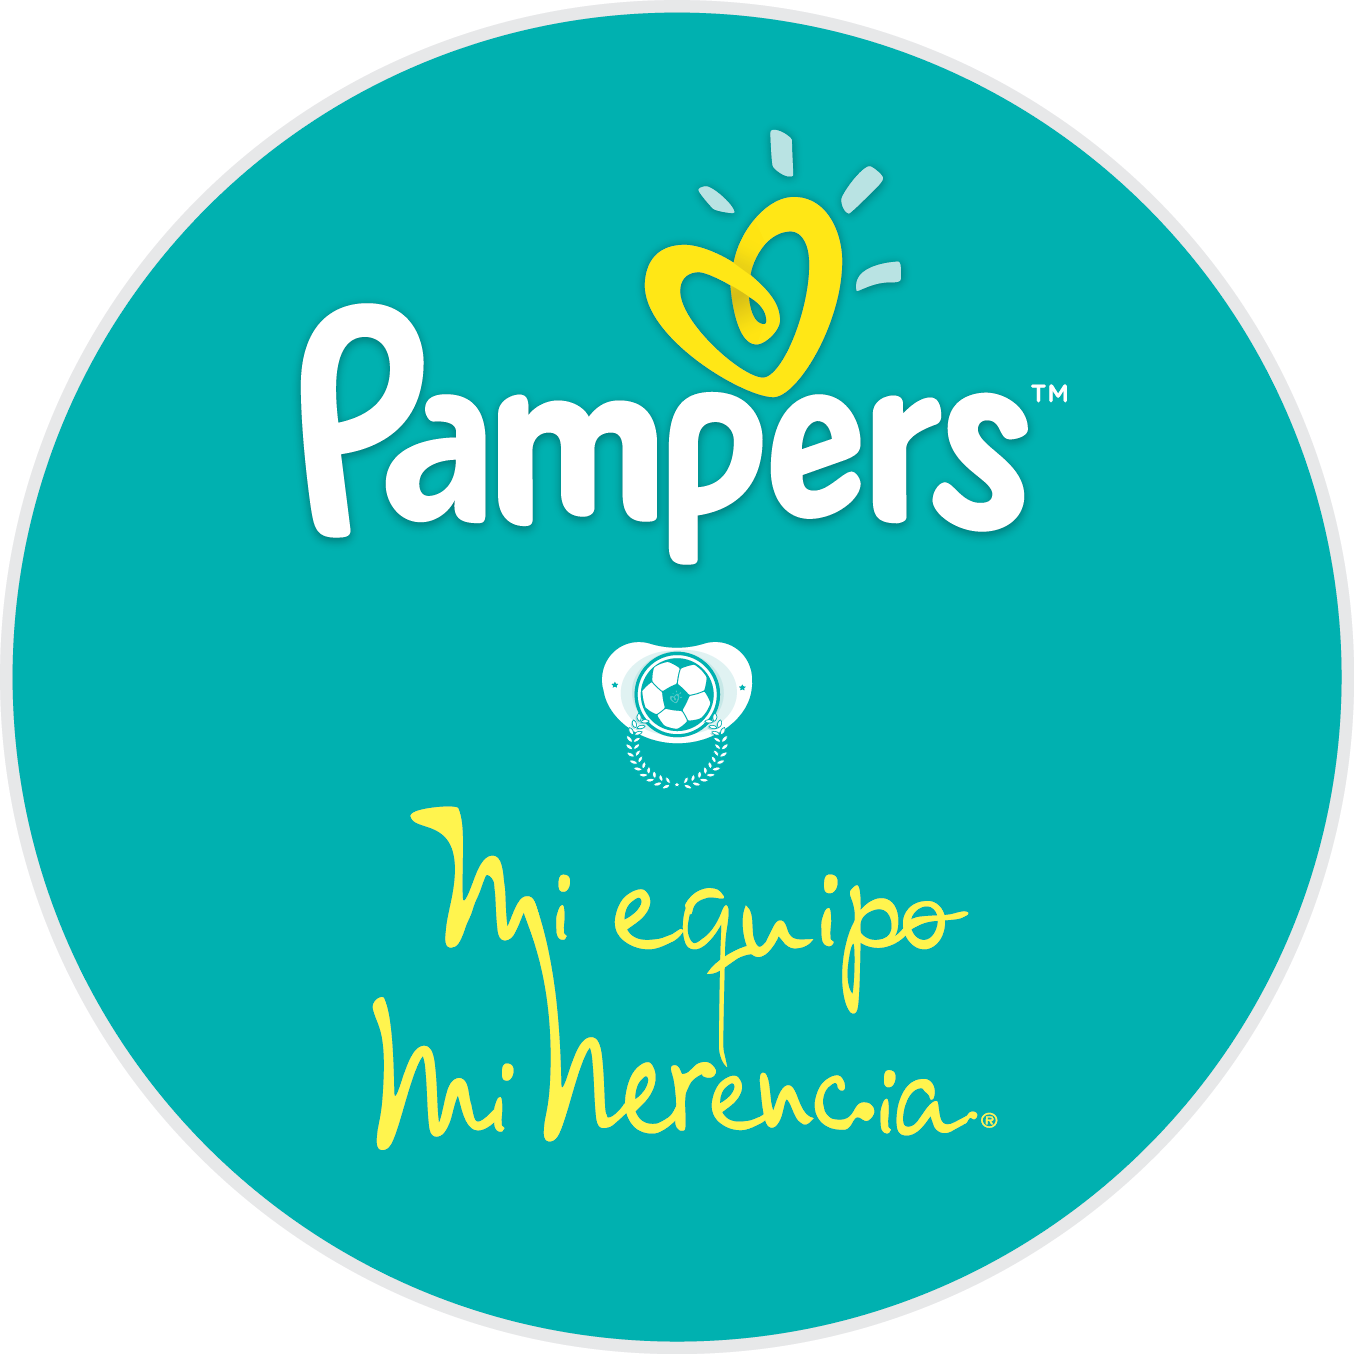 https://www.facebook.com/pamperslatino/app_1450457481858031